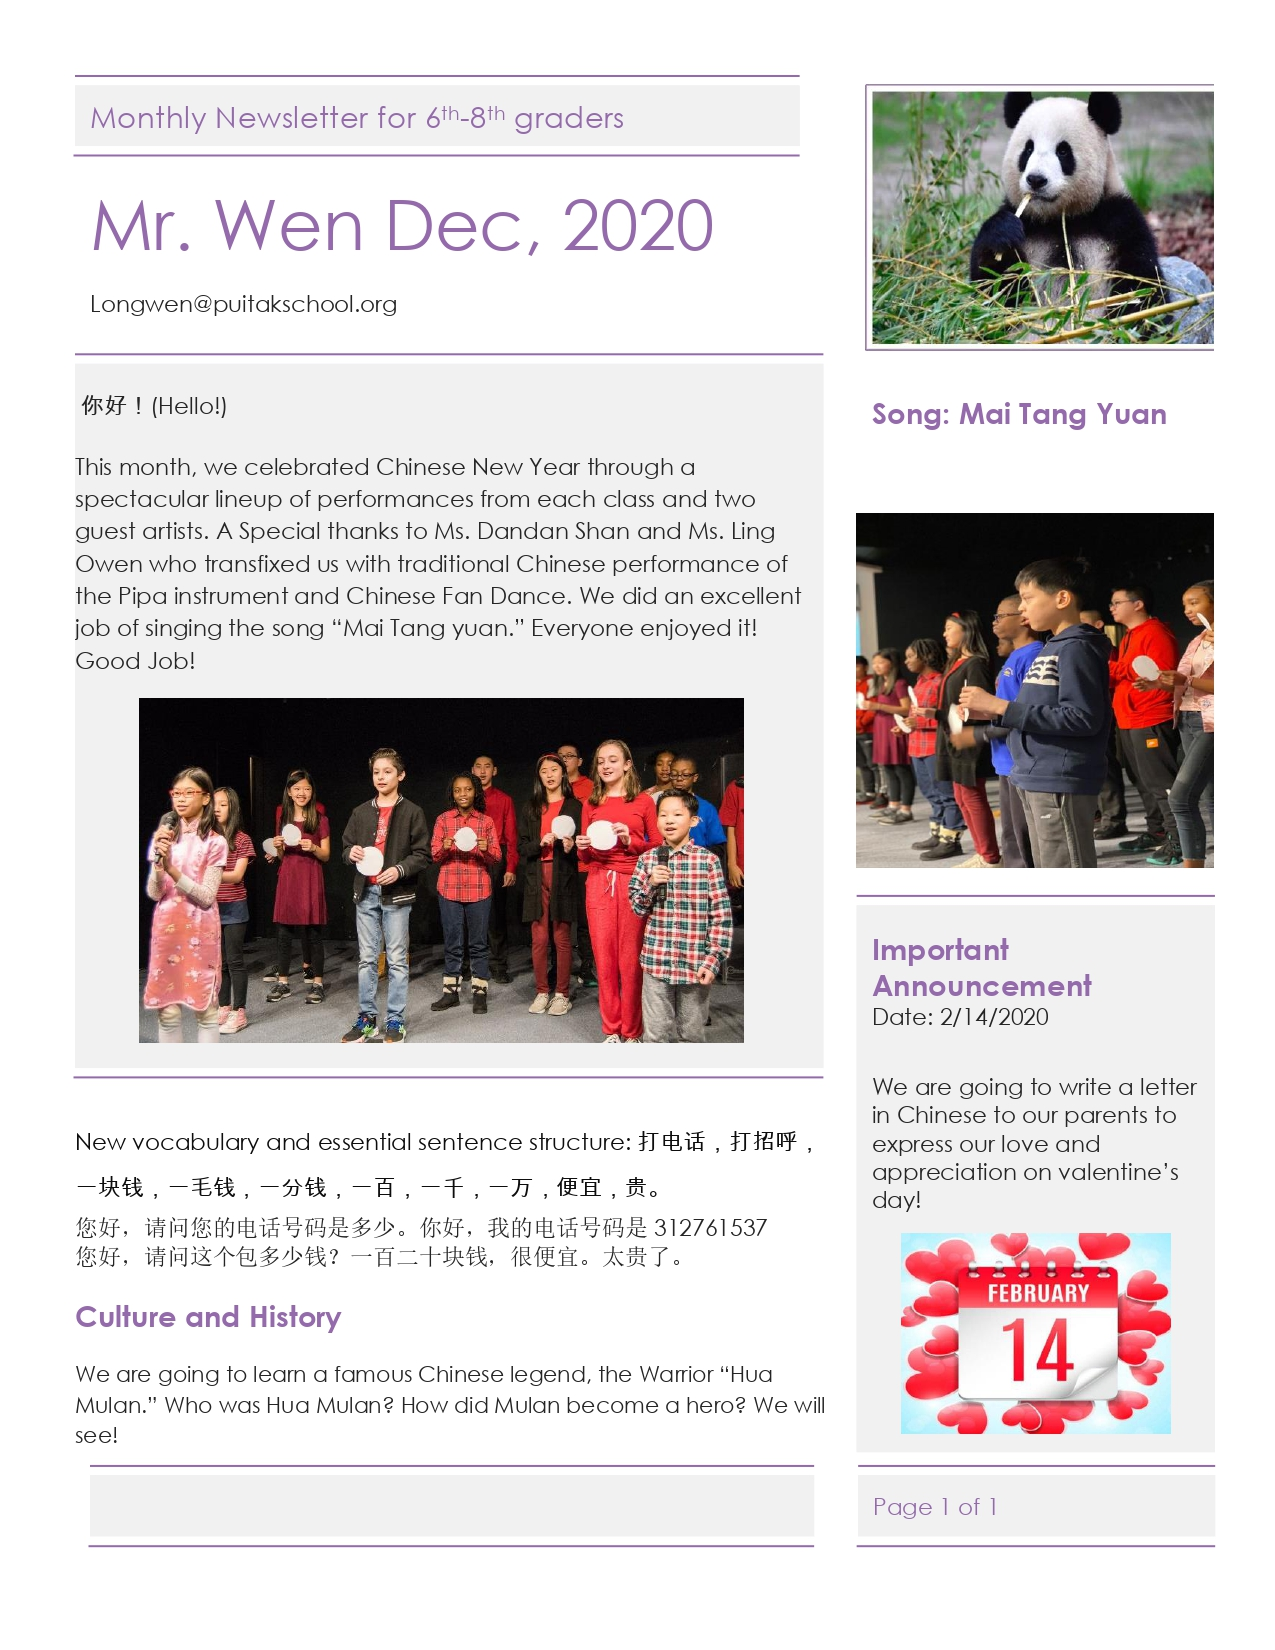 JackNewsletterJanuary2020 for 6th-8th gr